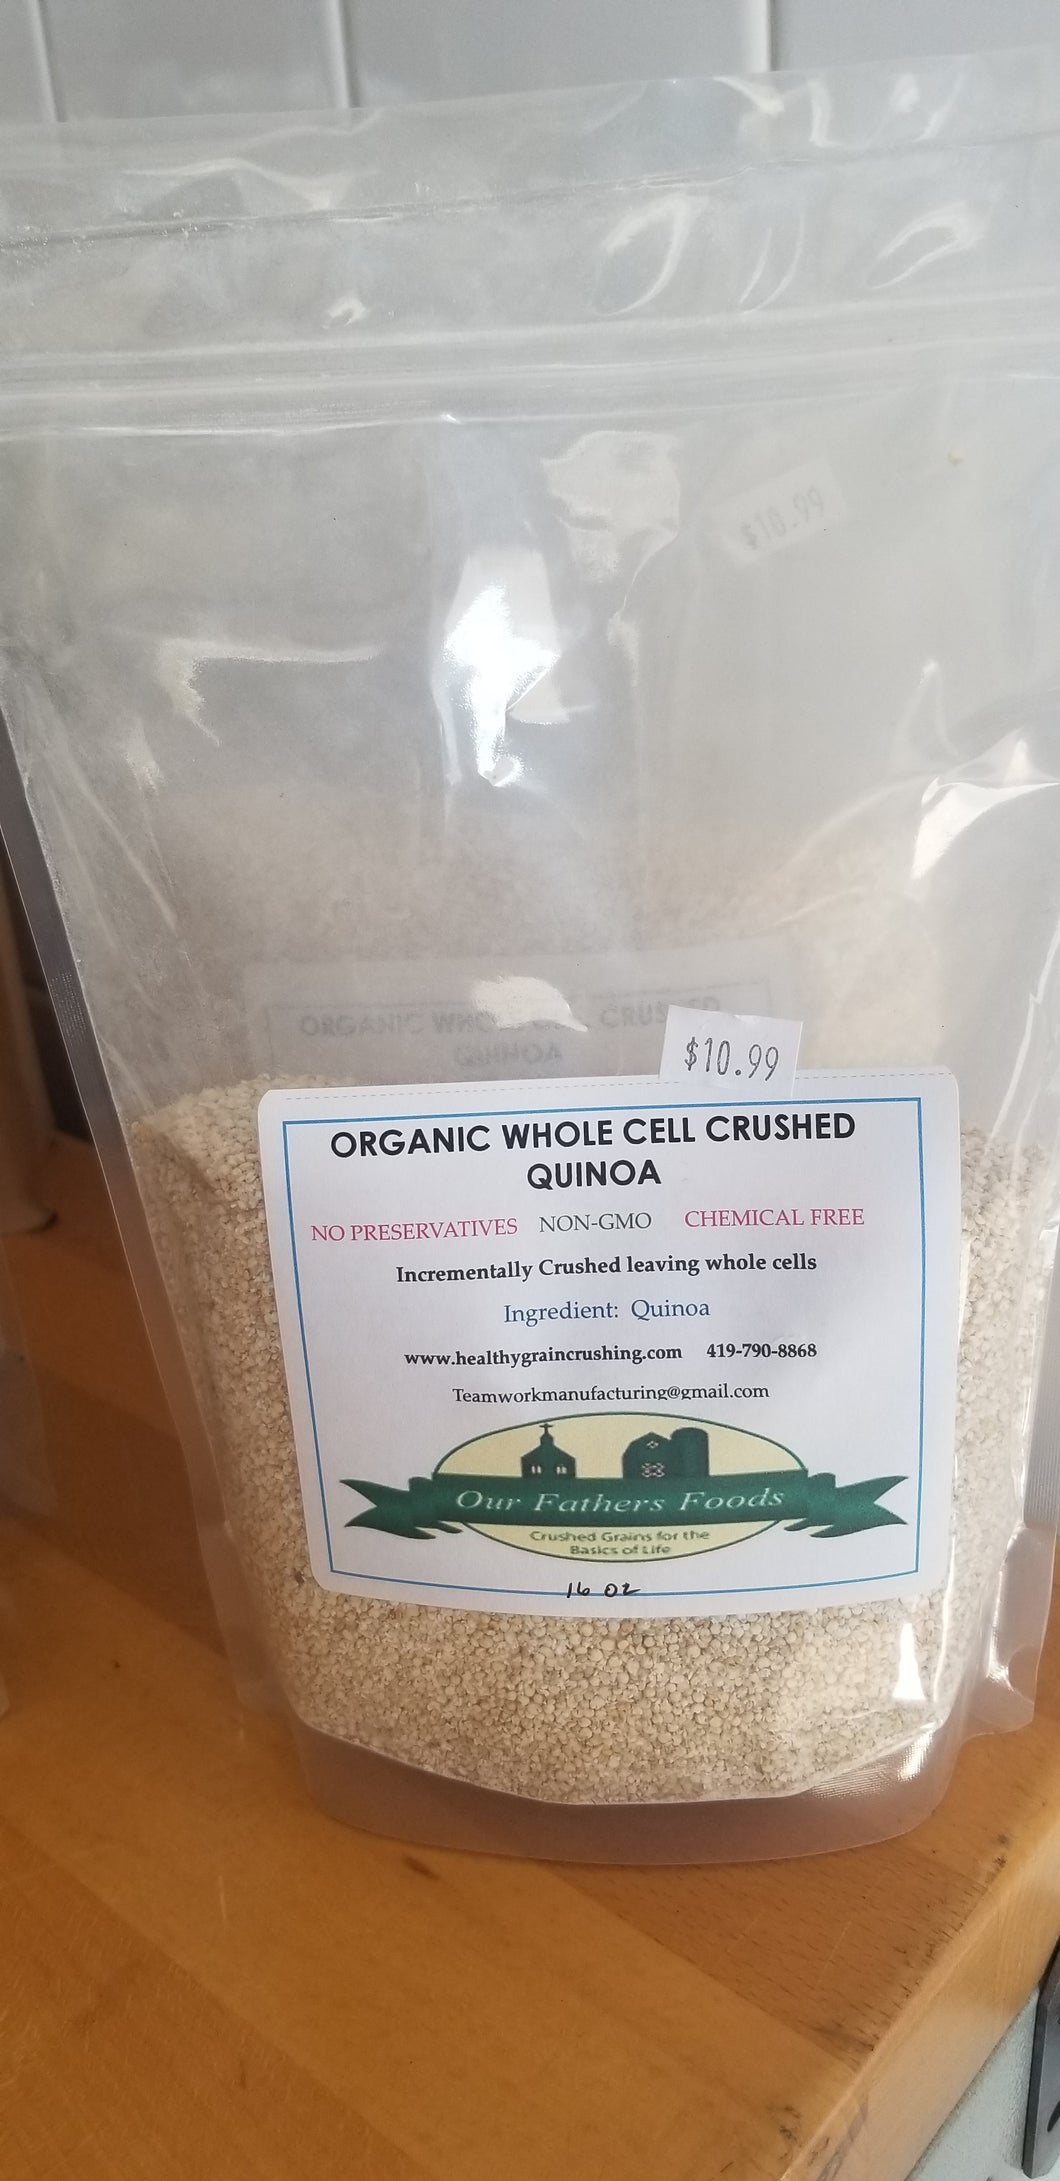 Our Father's Foods Whole Cell Crushed Quinoa (1lb)